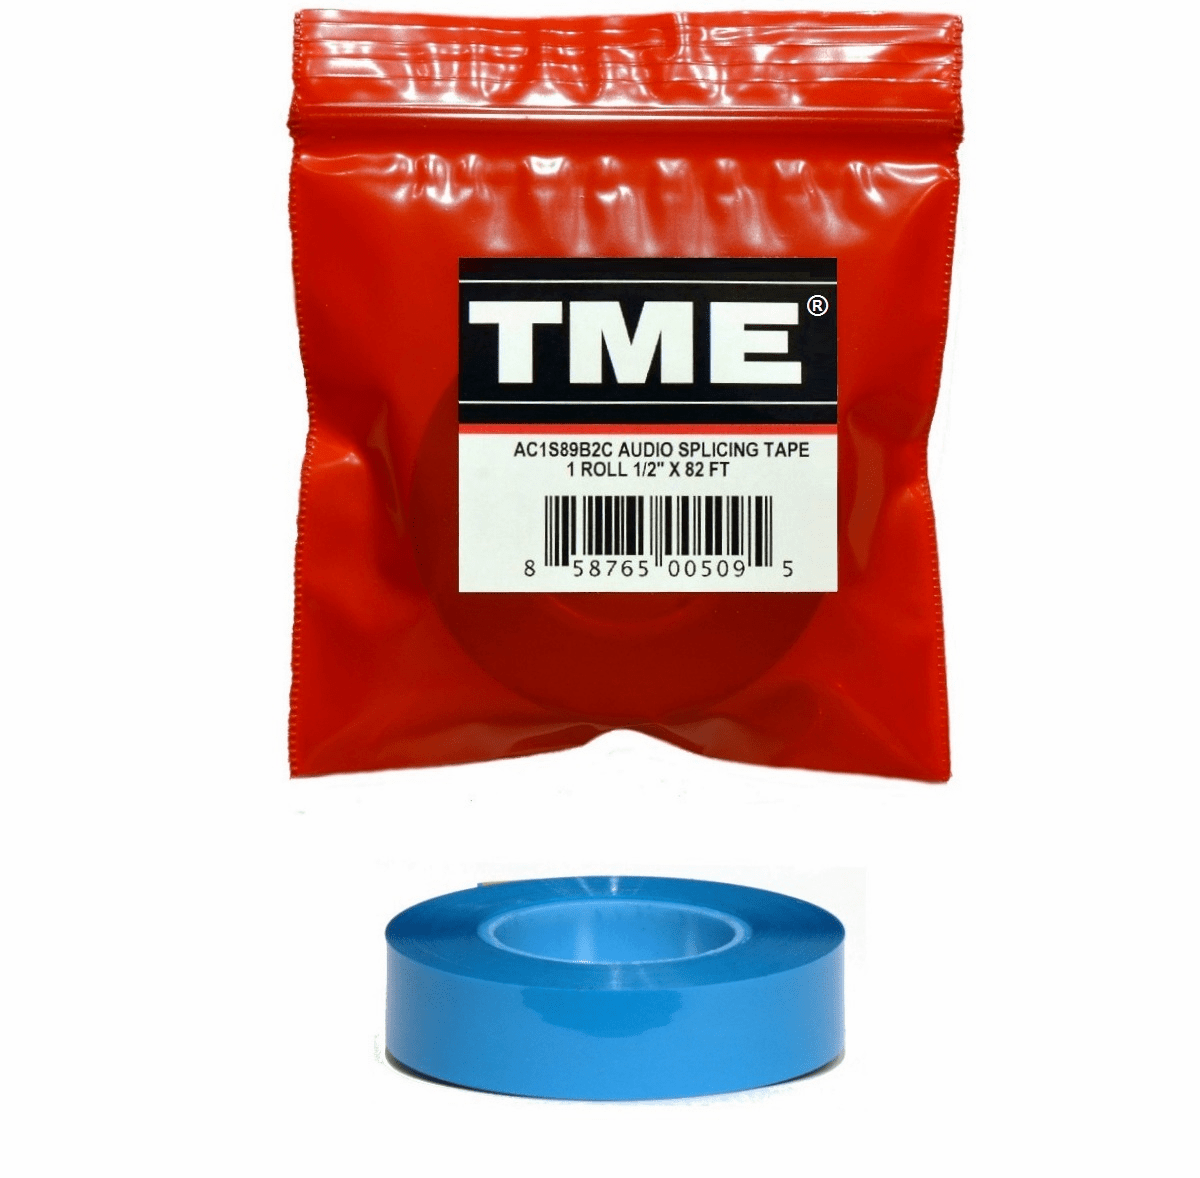 "Splicing Tape 1/2"" X 82 FT by TME"